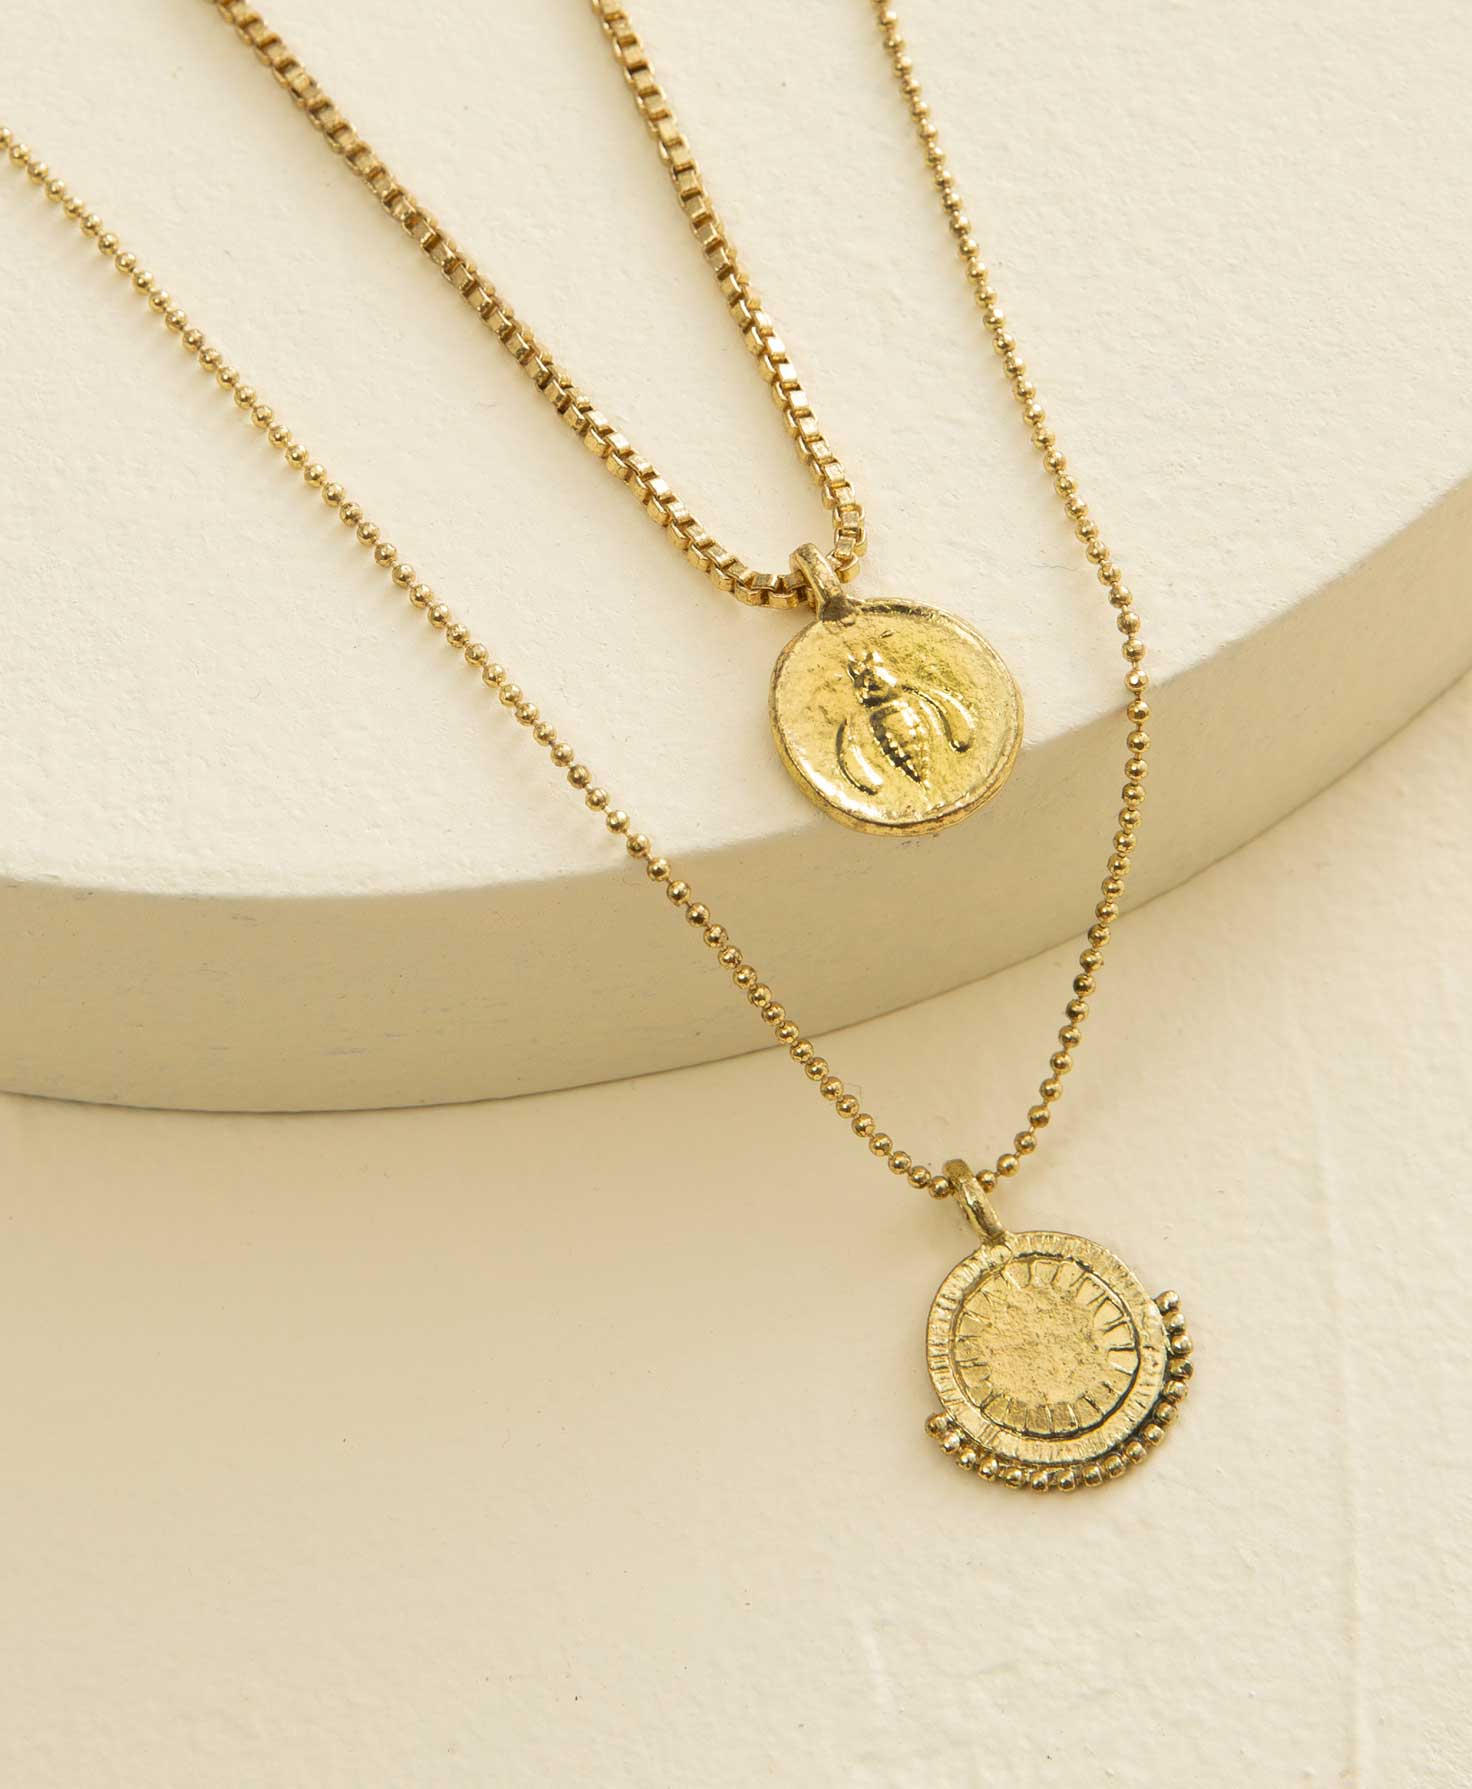 The two gold necklaces included in the Charmed Medallion Necklace set lay draped over a cream-colored platform. The varying necklace lengths allow the two necklaces to be worn layered together or by themselves. The longer necklace has a ball-style chain and a circular gold pendant with a row of small golden balls lining the bottom half of the circle. The shorter necklace has a rectangular-style chain and a circular gold pendant embellished with an image of a bee.